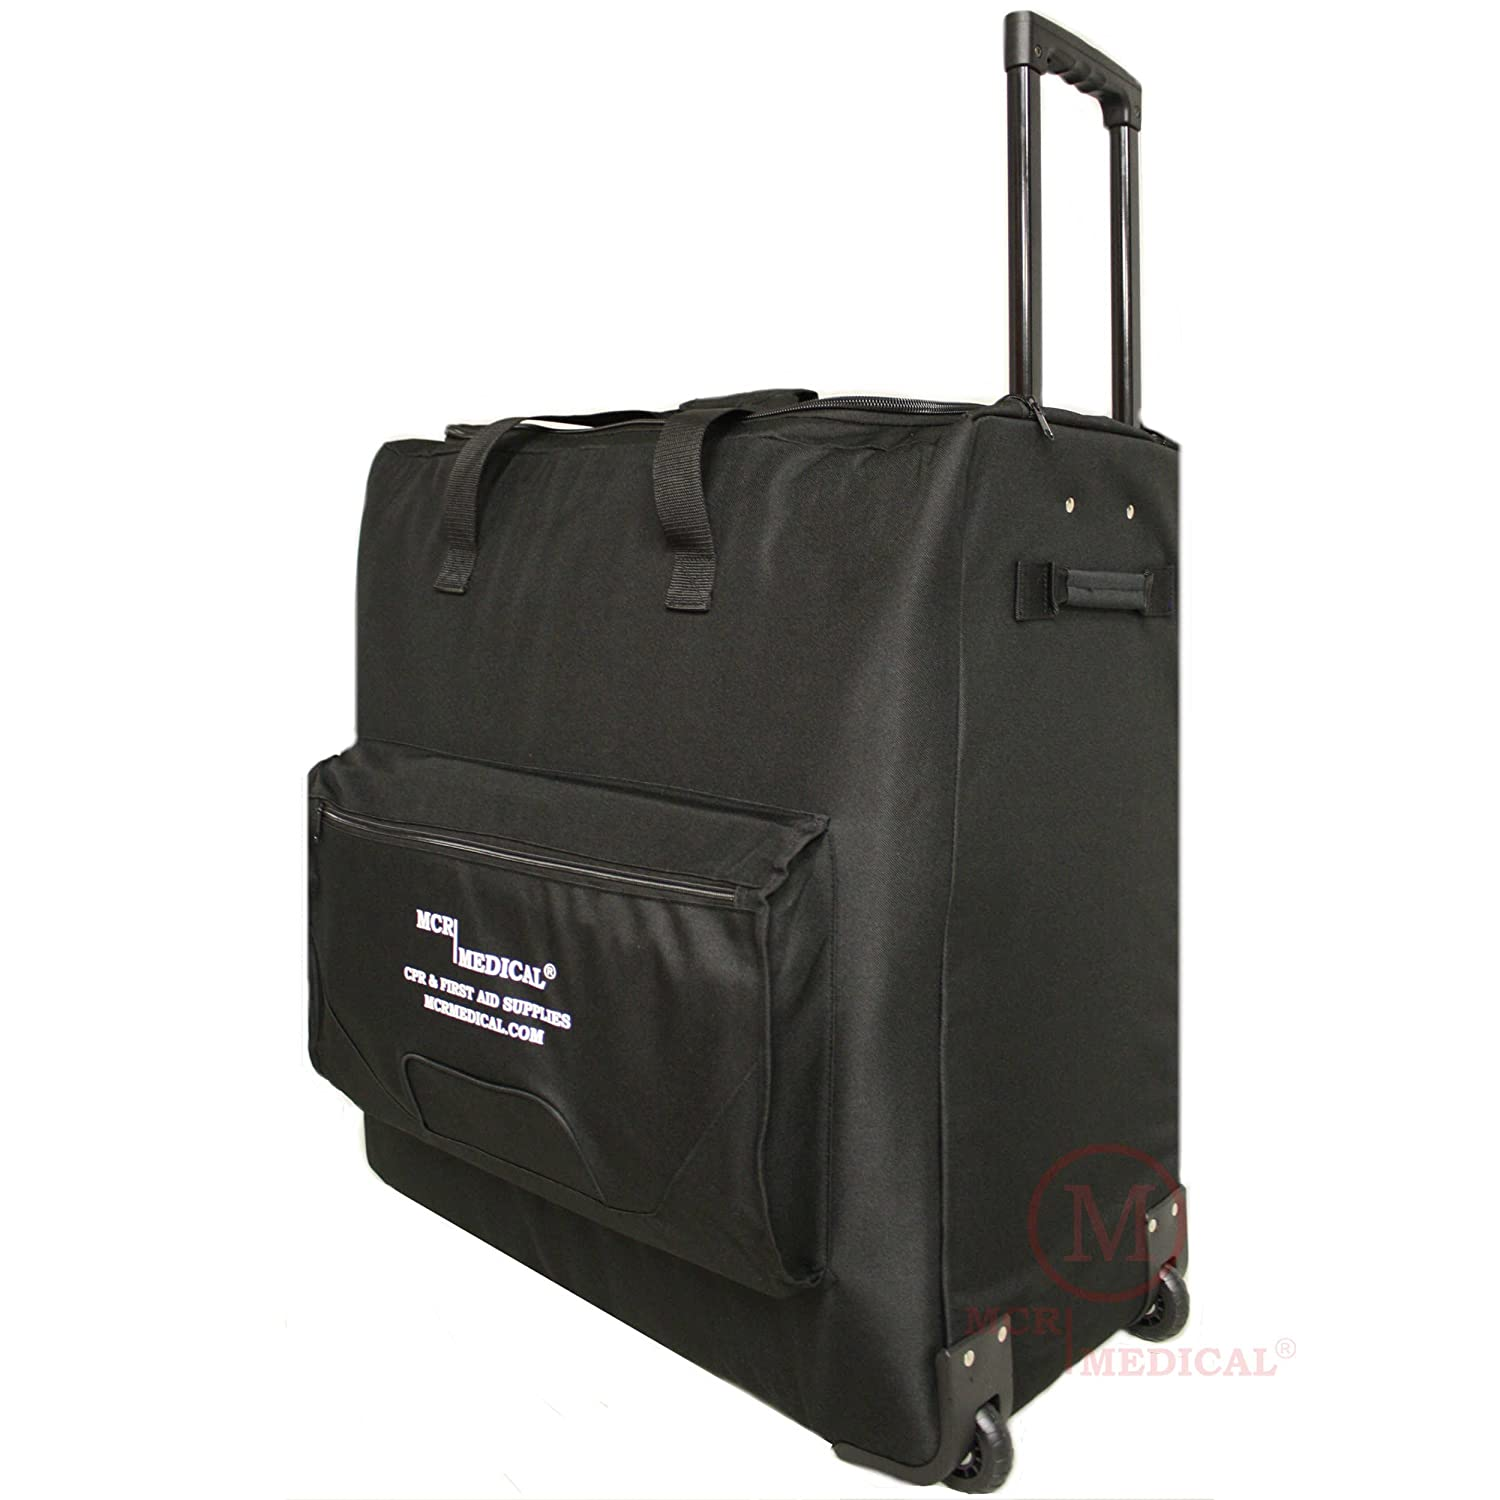 CPR Manikin CarryAll Bag with Wheels / Wheeled CPR Training Case, MCR Medical